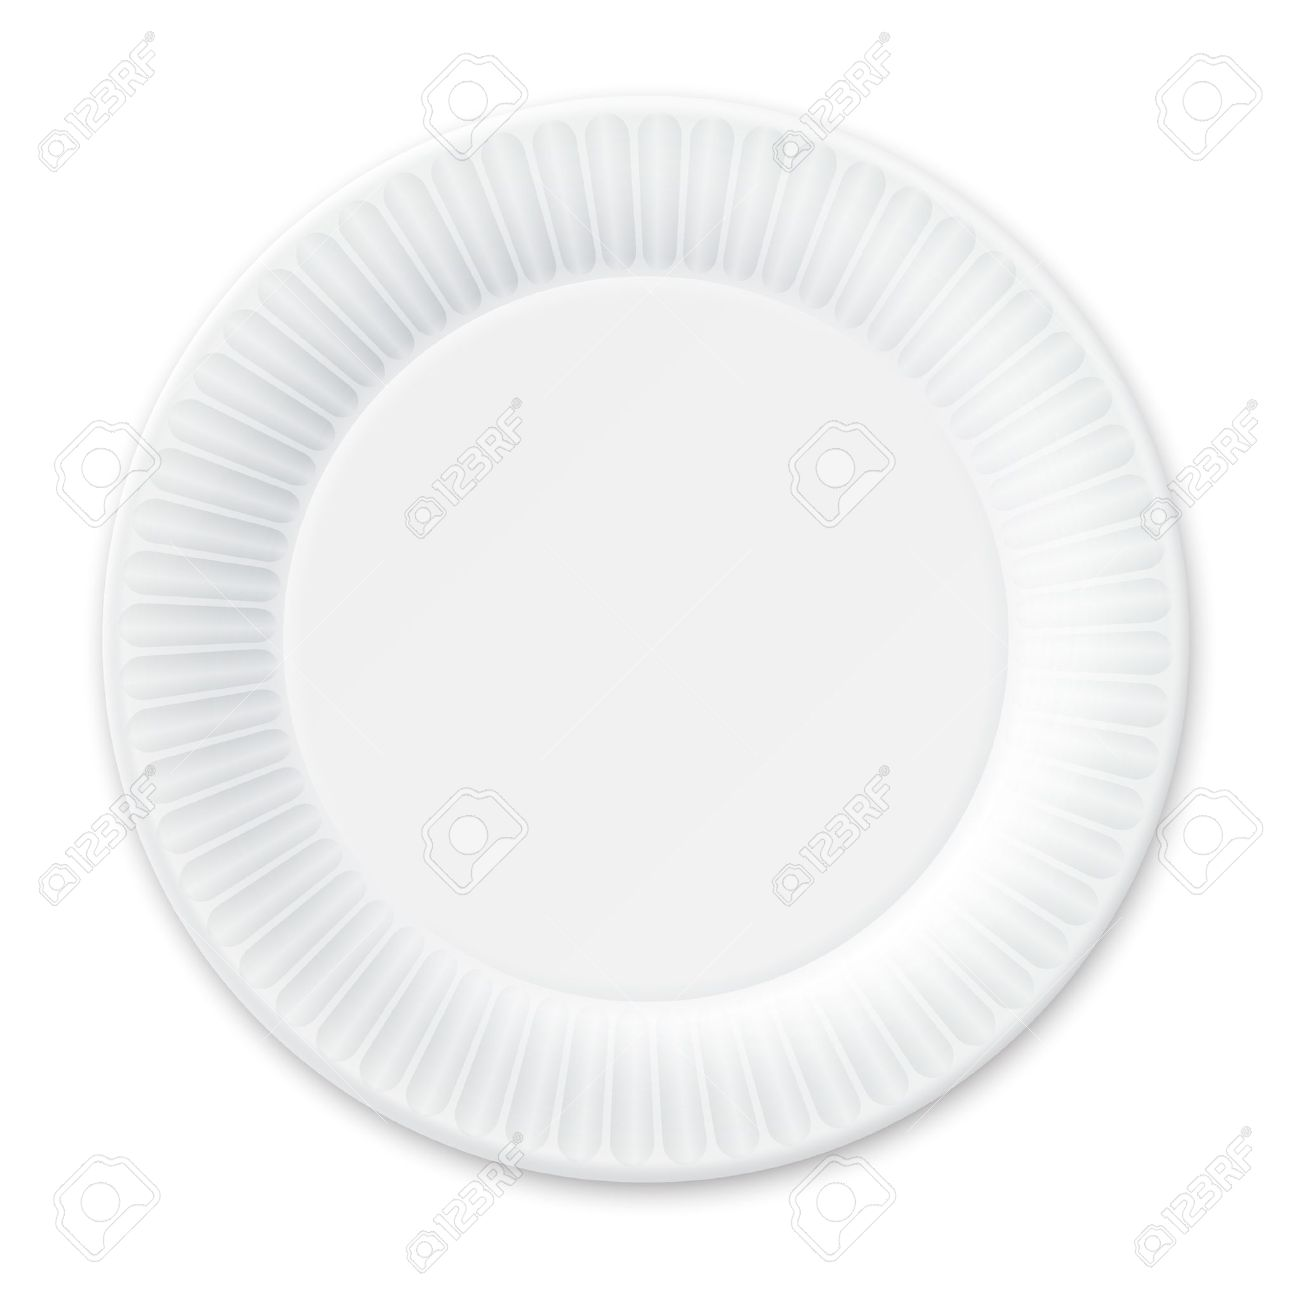 Disposable Paper Plate Isolated on White Stock Vector - 21685820  sc 1 st  123RF.com & Disposable Paper Plate Isolated On White Royalty Free Cliparts ...